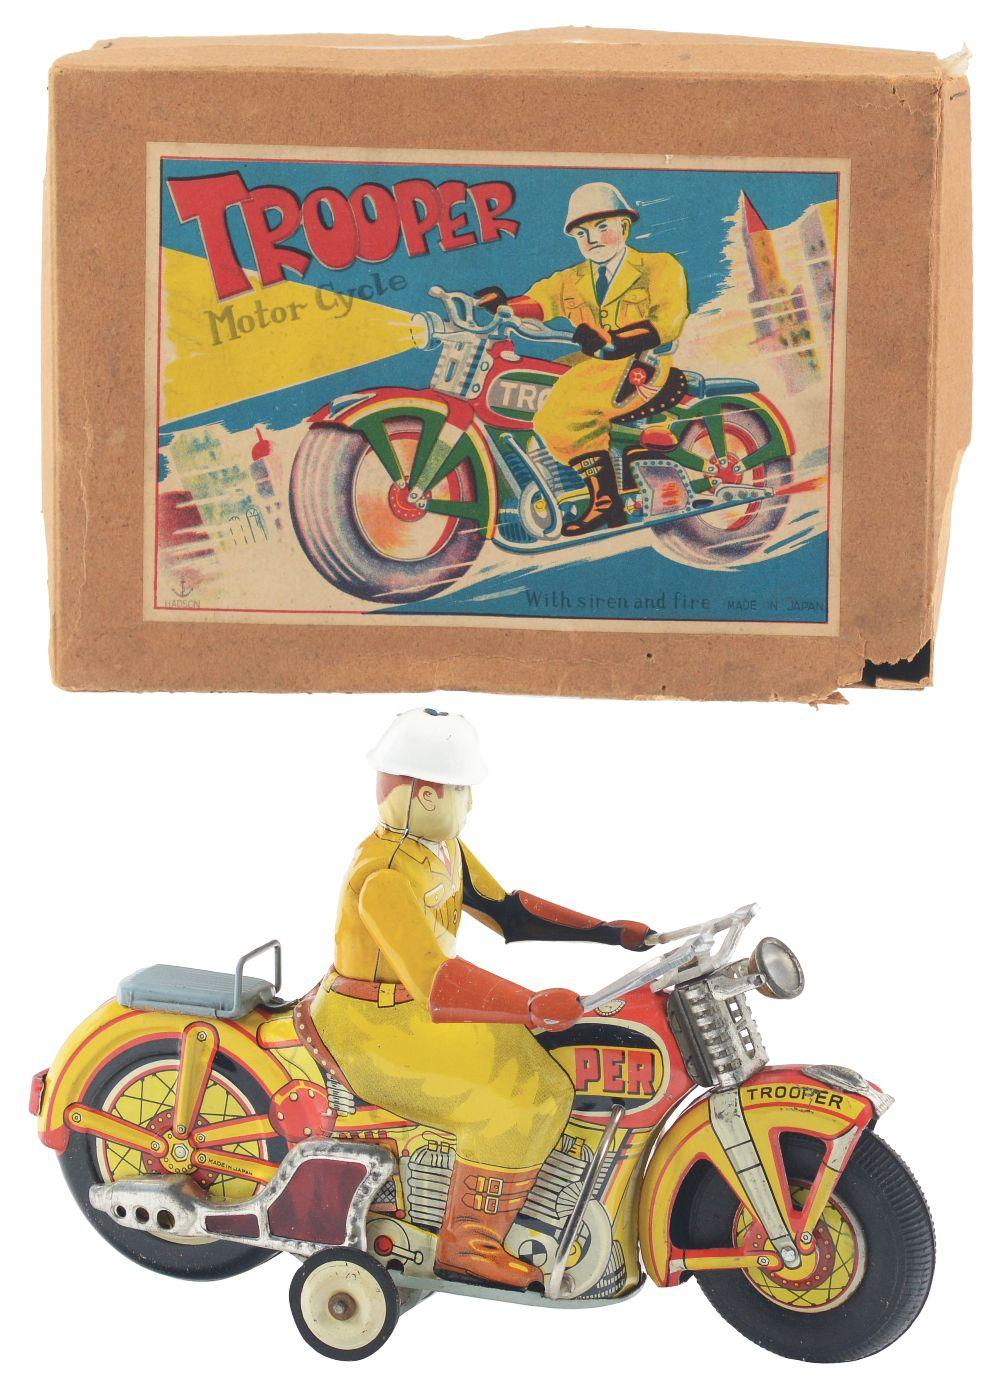 Lot 2247: Japanese Tin-Litho Friction Trooper Motorcycle Toy with Box.